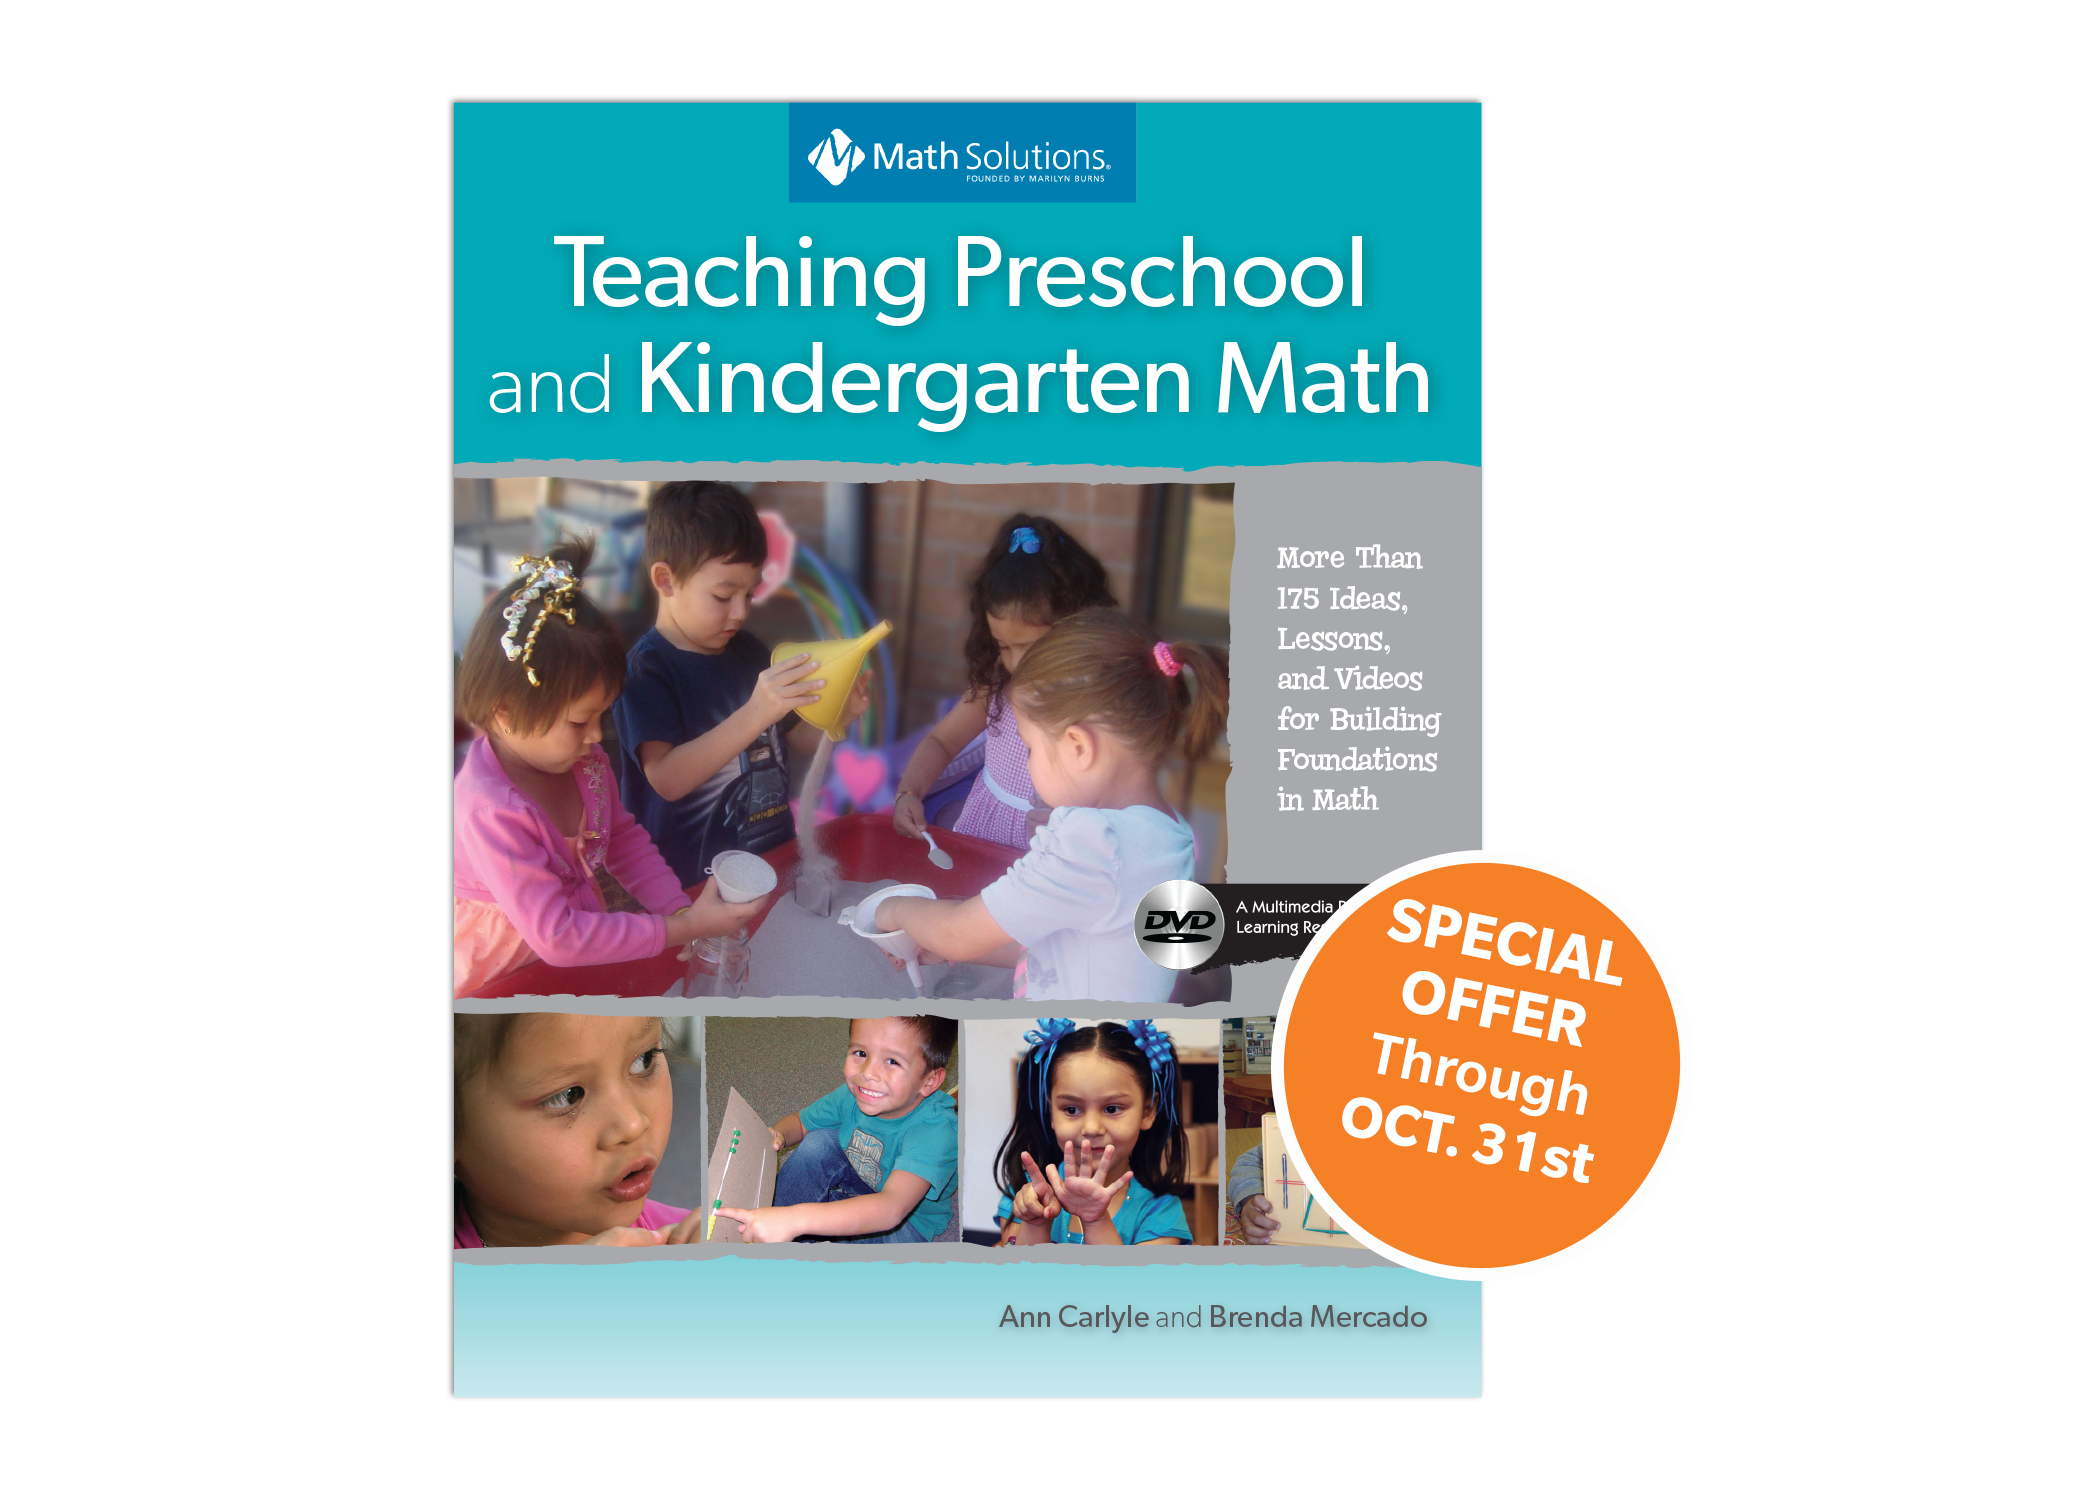 teaching preschool and kindergarten math book cover with special offer | special offer through oct 31st